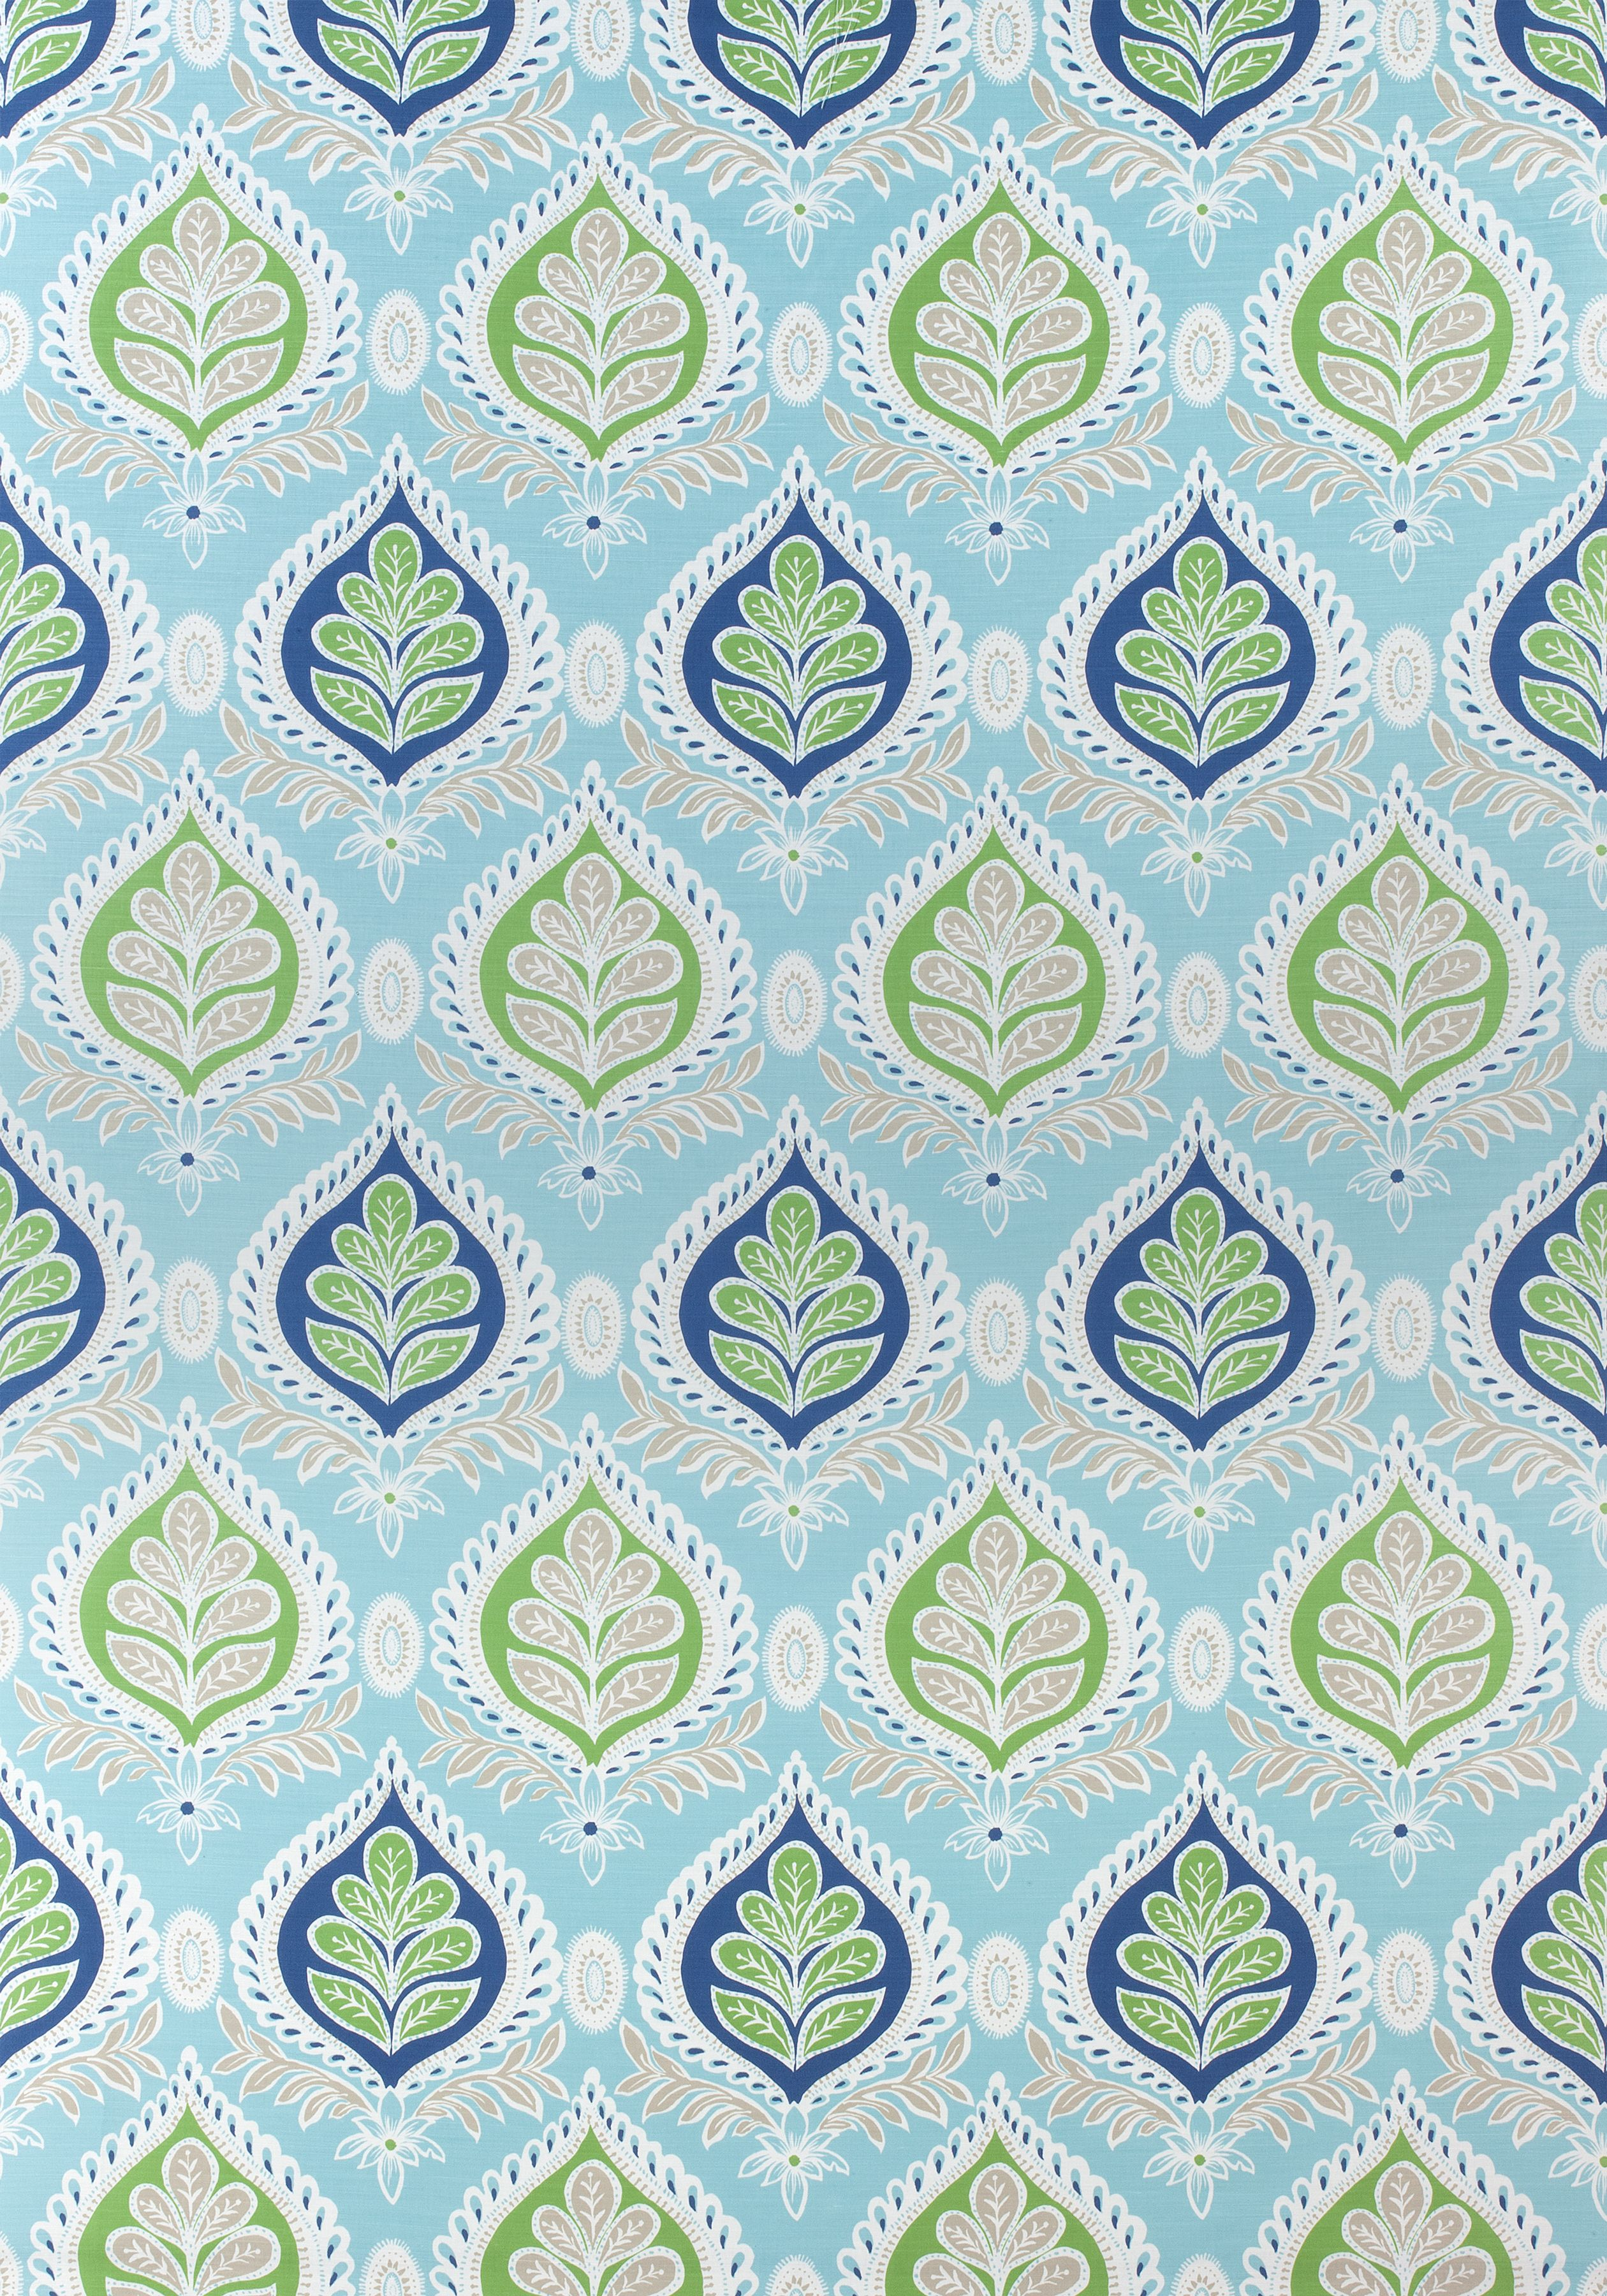 MIDLAND, Blue and Green, F924316, Collection Bridgehampton from ...